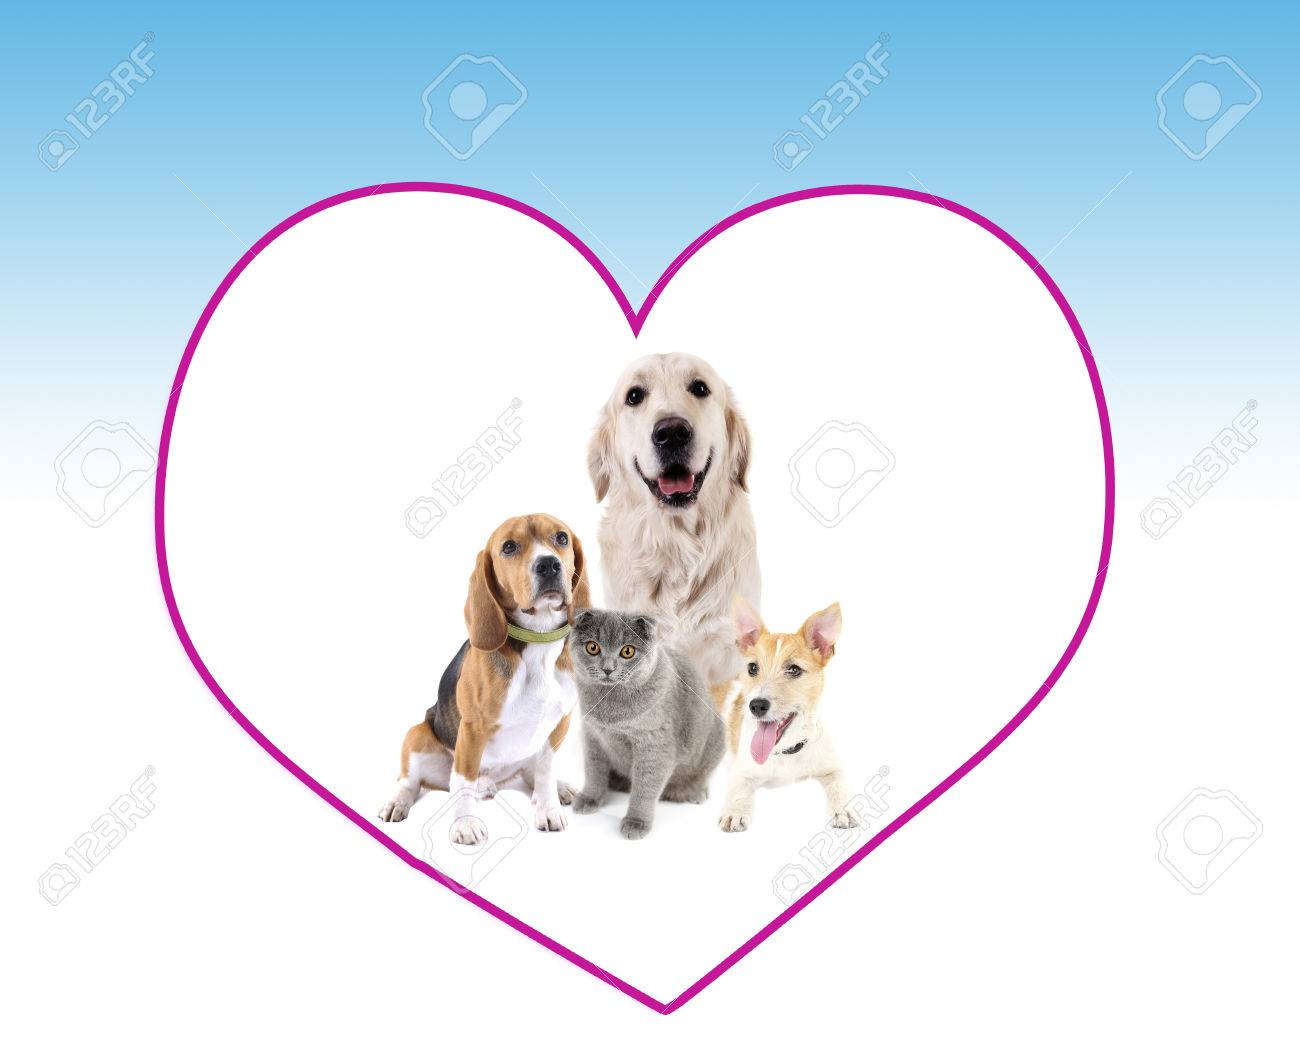 Cute Pets In Big Heart Frame On Light Blue Background Stock Photo ...